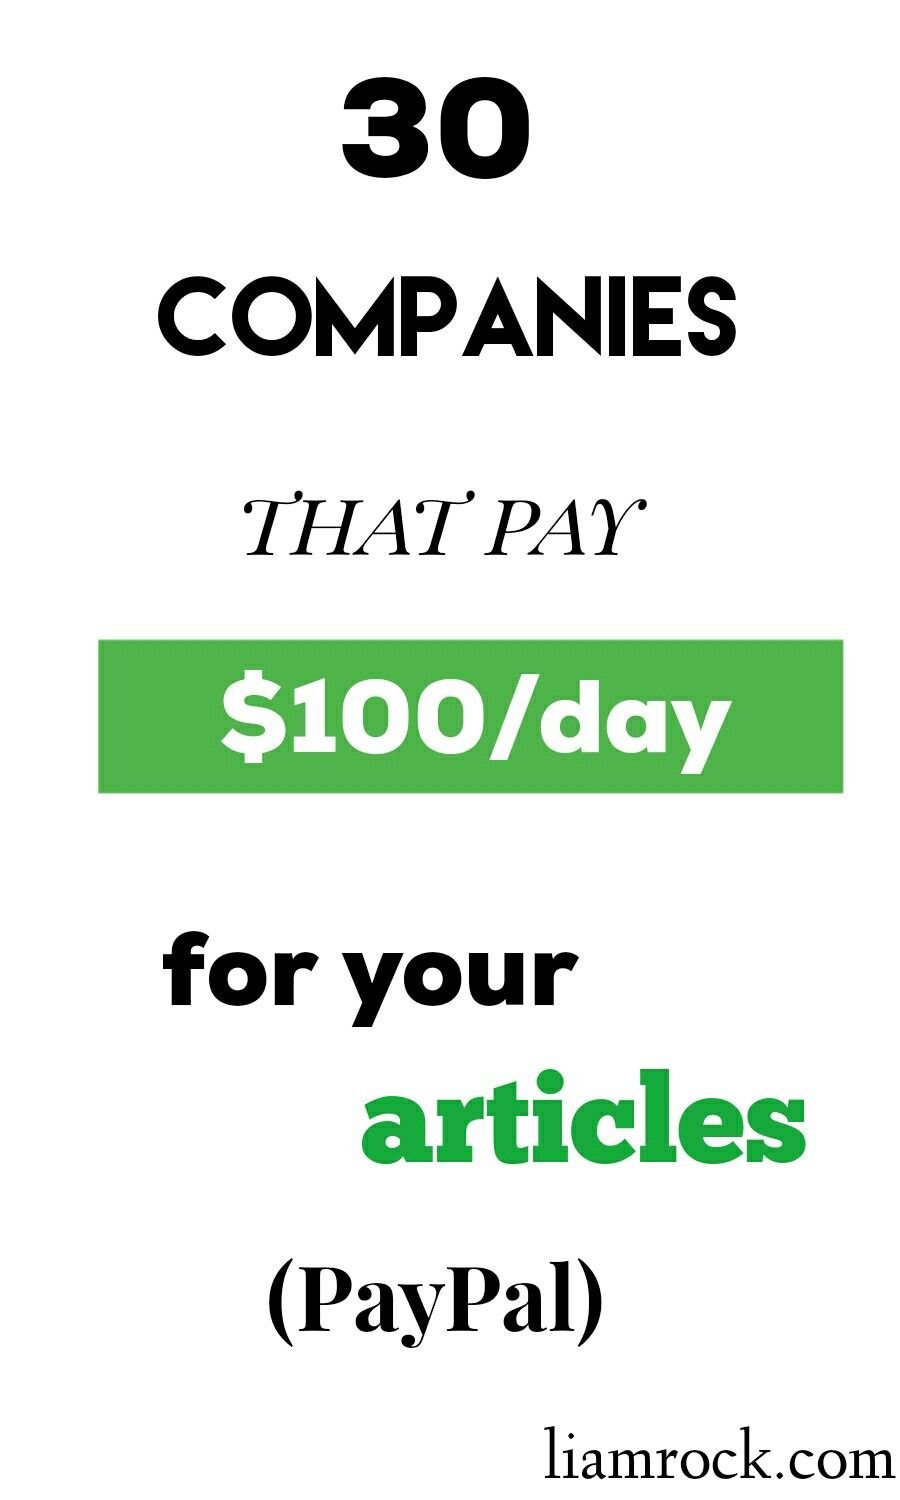 Pay for my article online kate chopin literary analysis